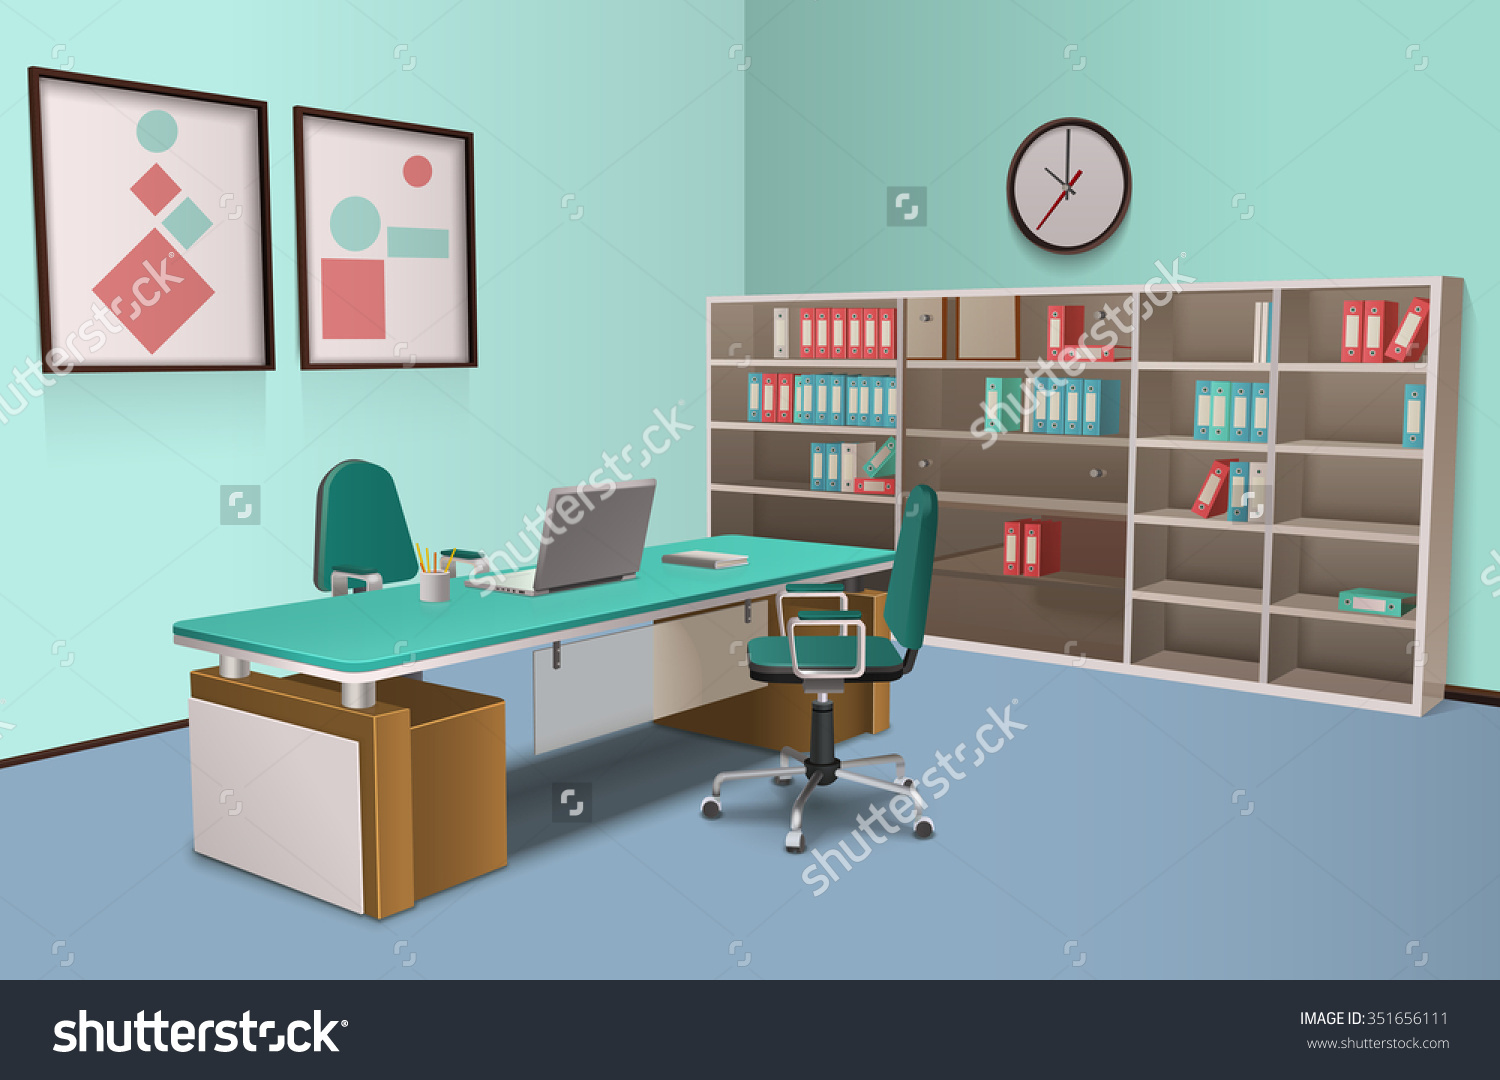 Realistic Room Office Big Boss Computer Stock Vector 351656111.